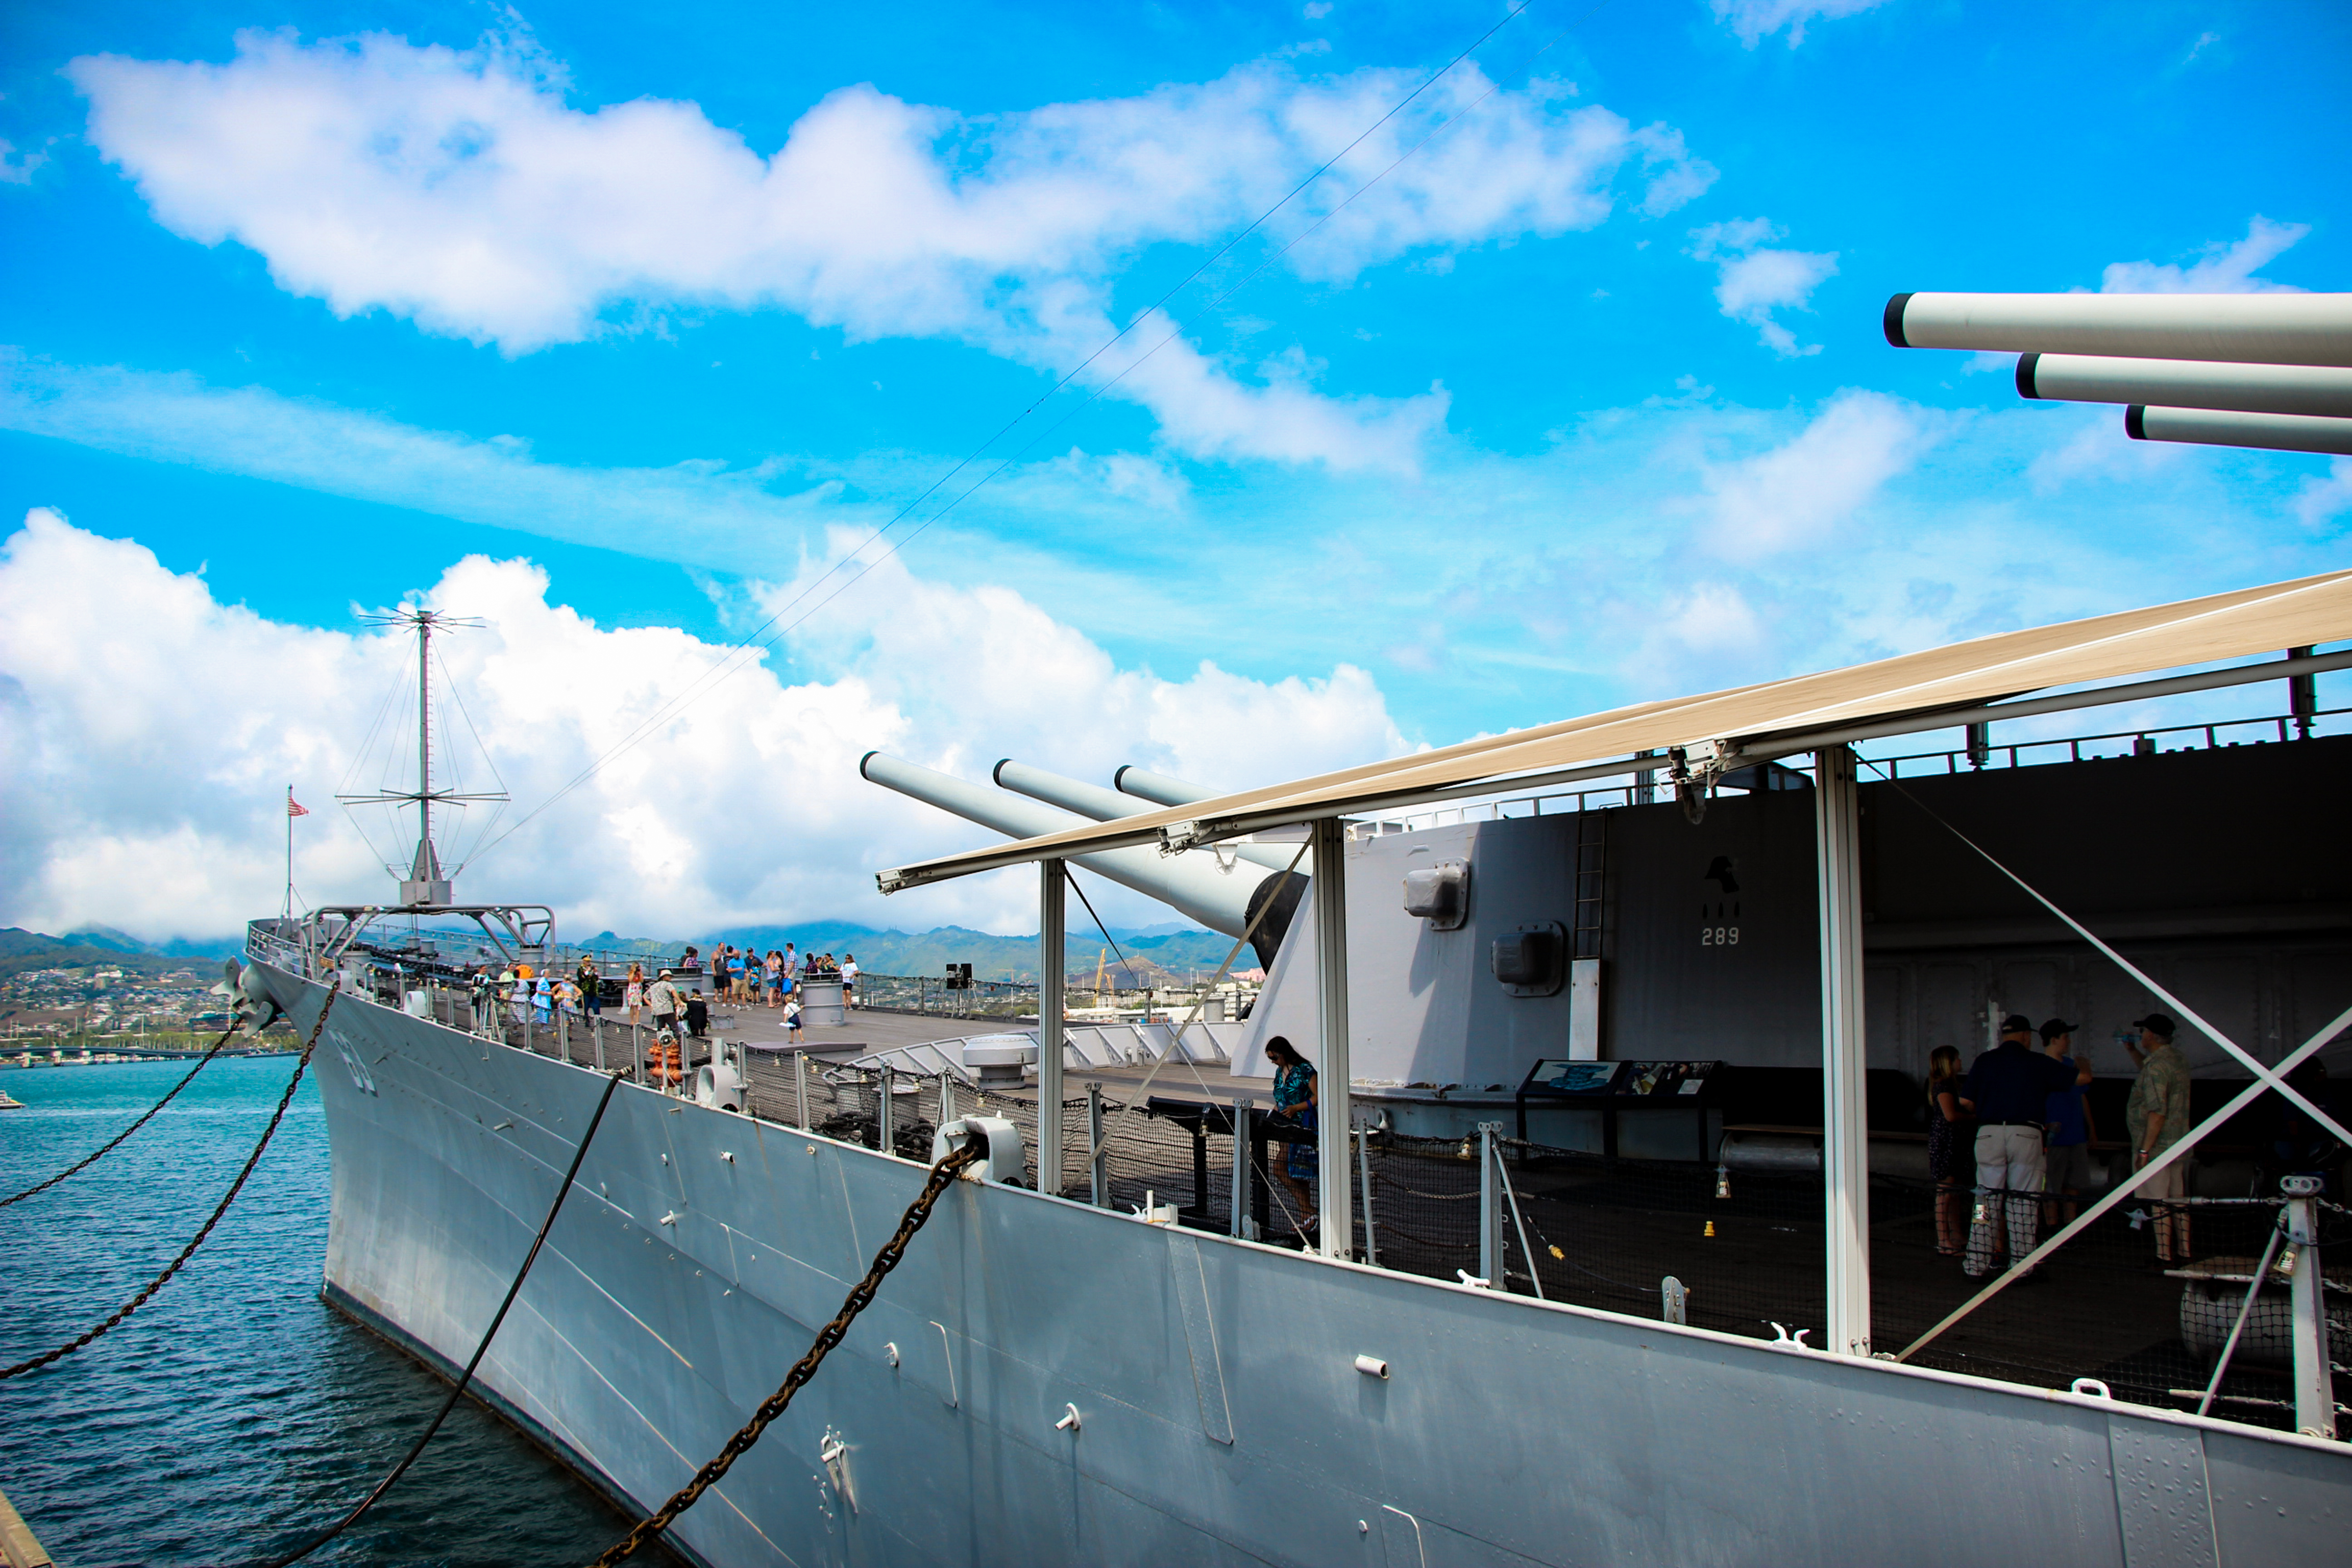 PEARL HARBOR: Battleship Missouri Memorial Museum